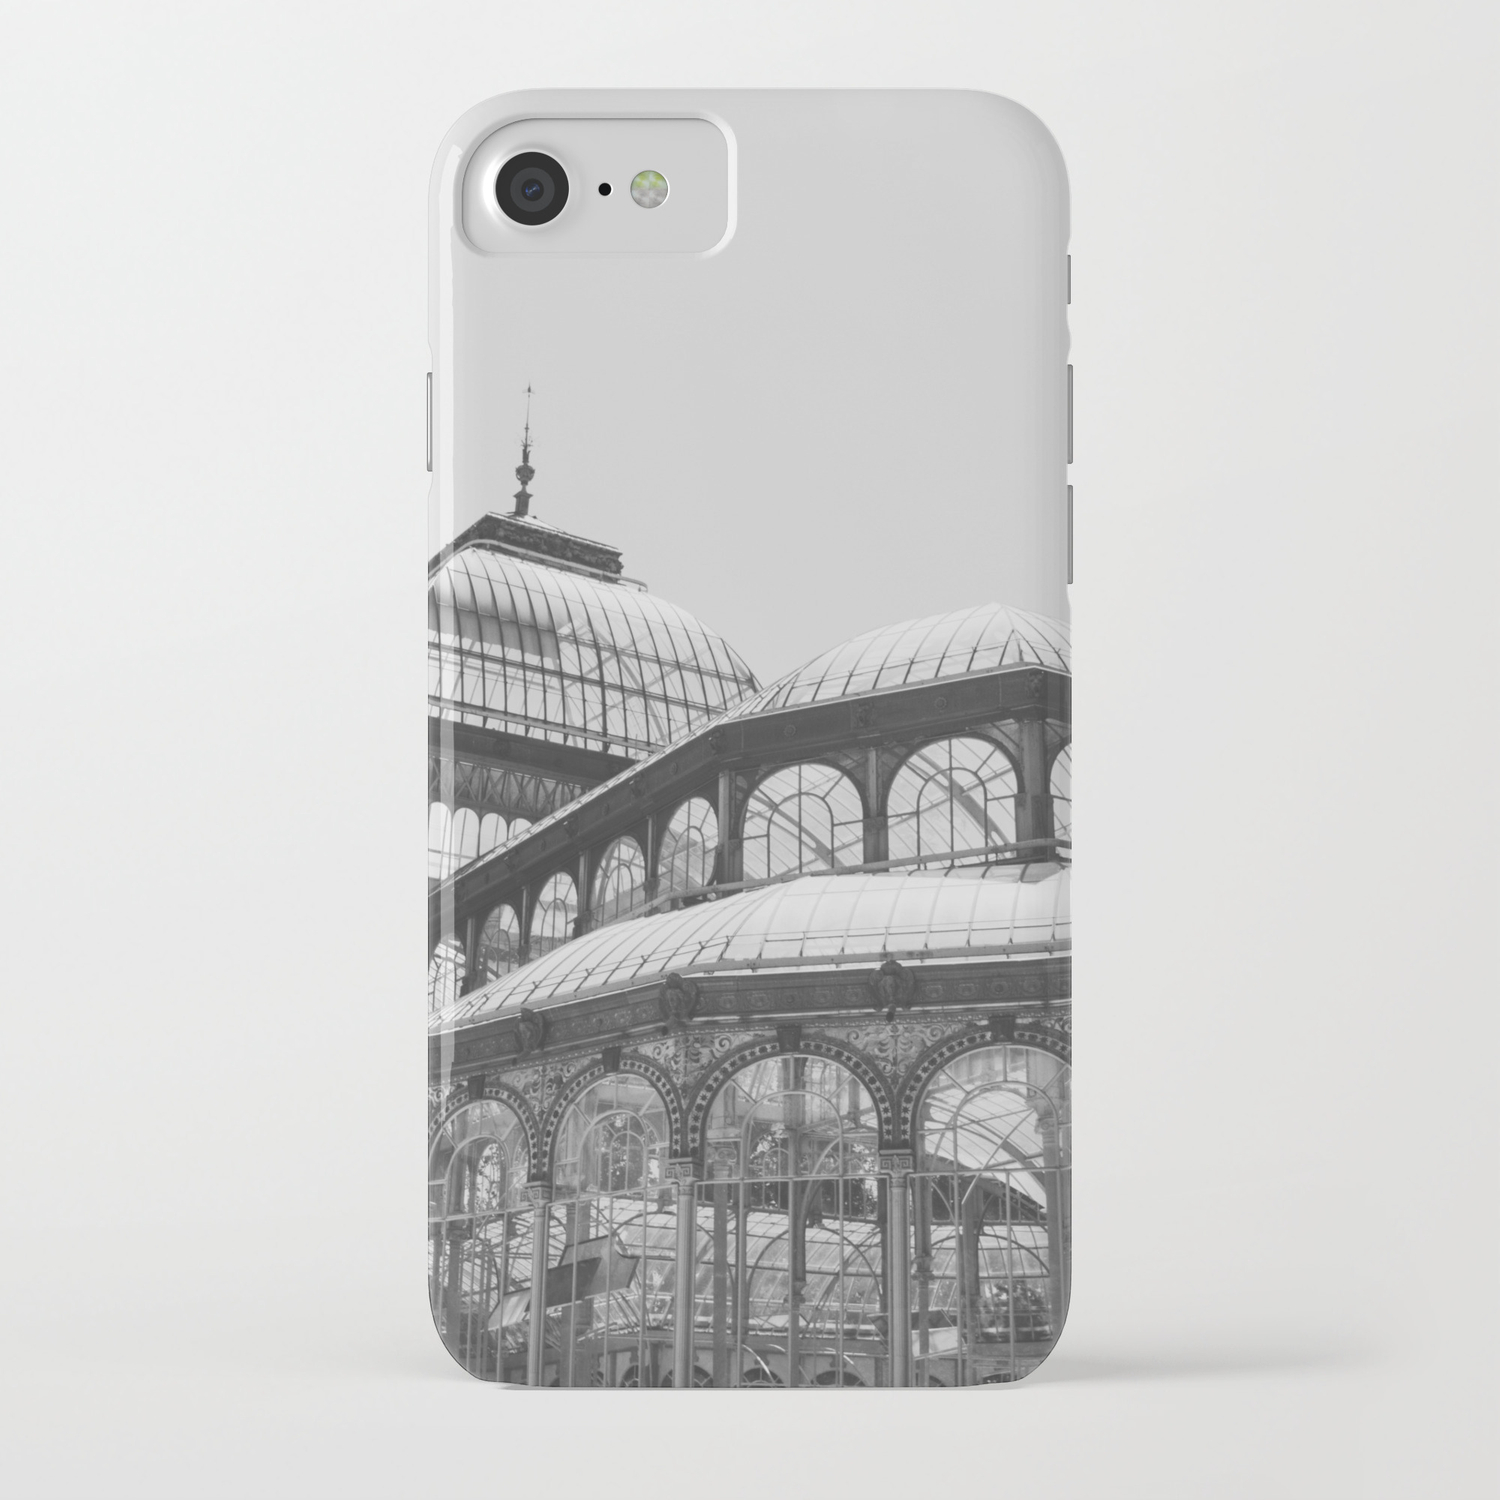 iphone 7 case crystal palace